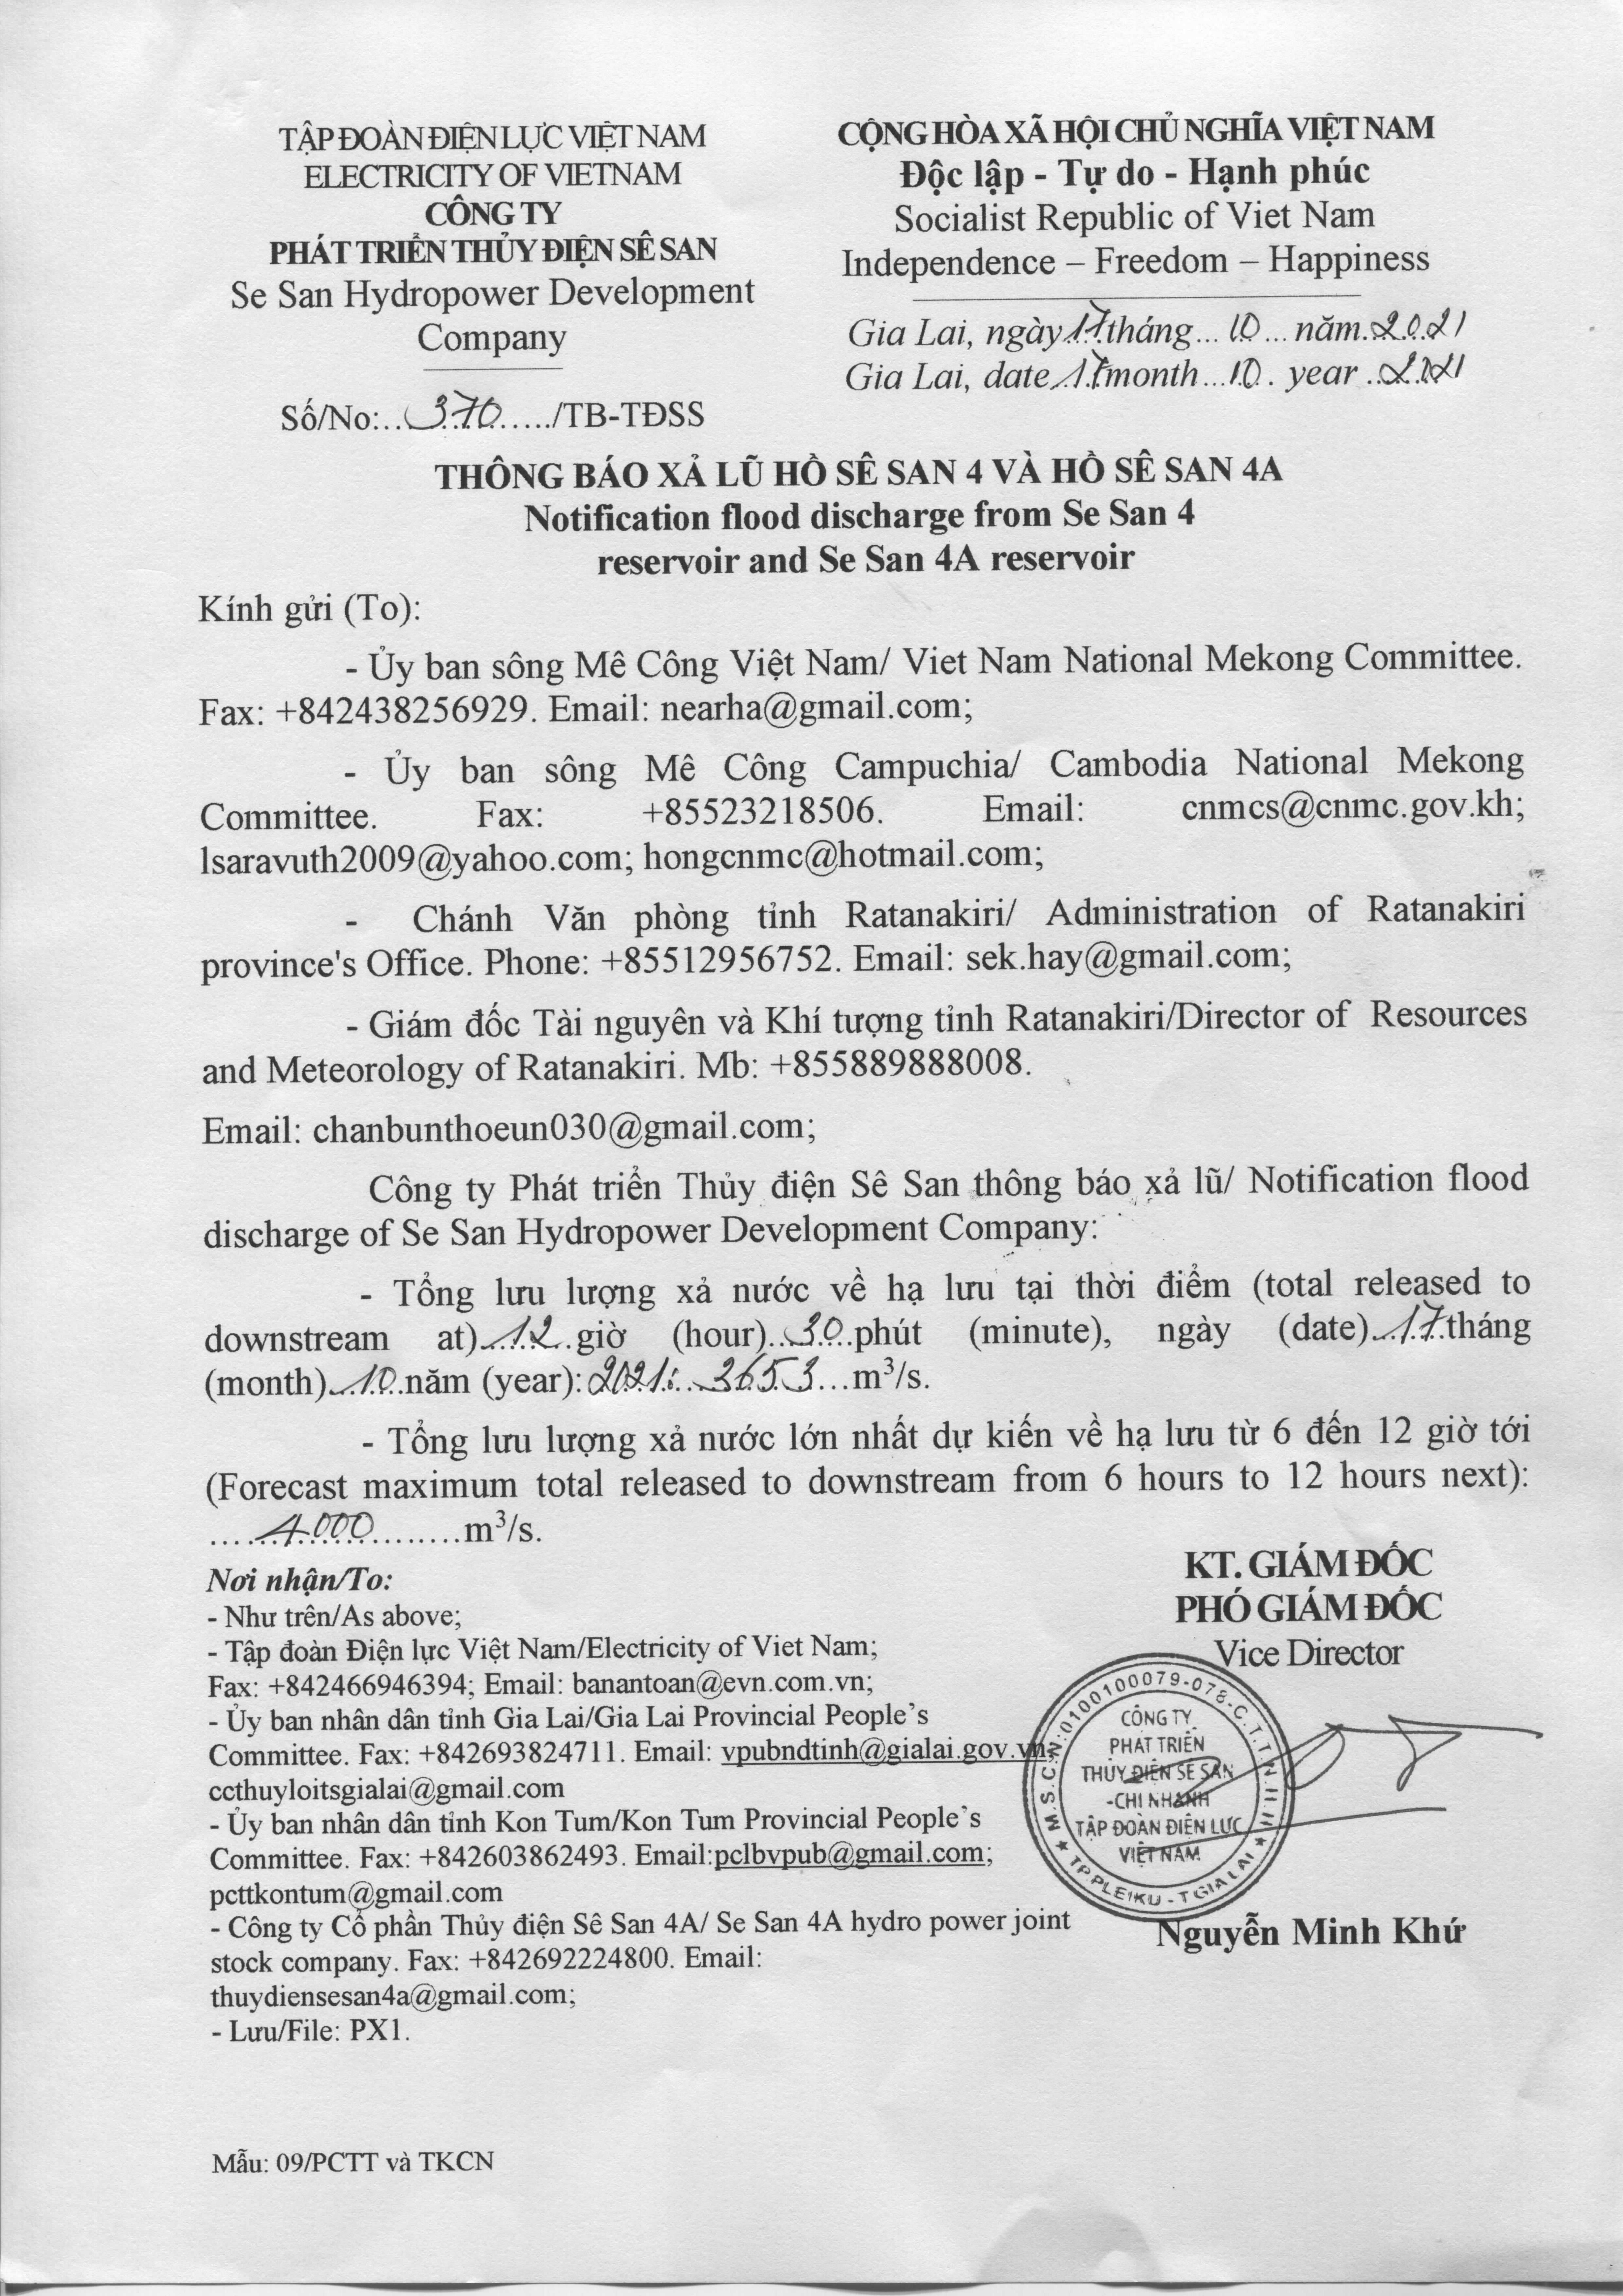 Notification On Water Release Schedule From Sesan 4 Reservoir and Sesan 4A Reservoir to the lower area of Sesan River at 12:30 on October 17, 2021